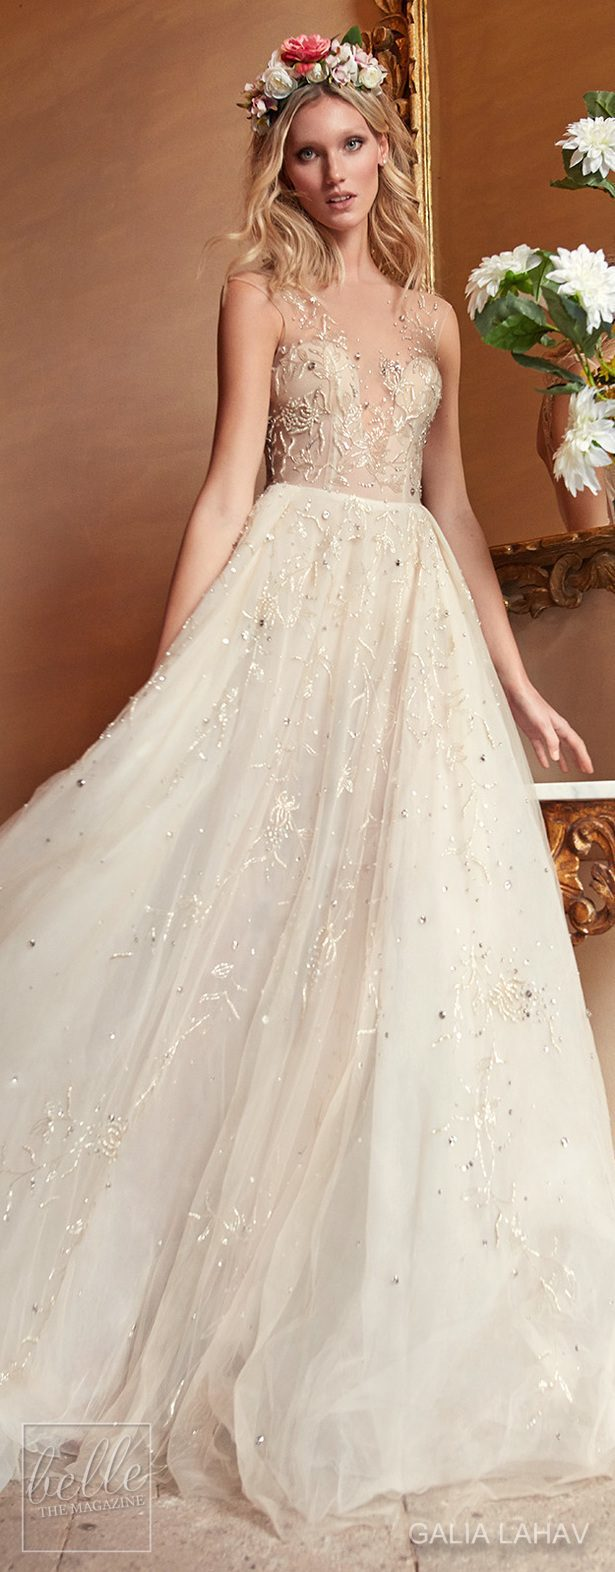 Wedding dress by Galia Lahav Couture Bridal - Fall 2018 - Florence by Night - Rose Water